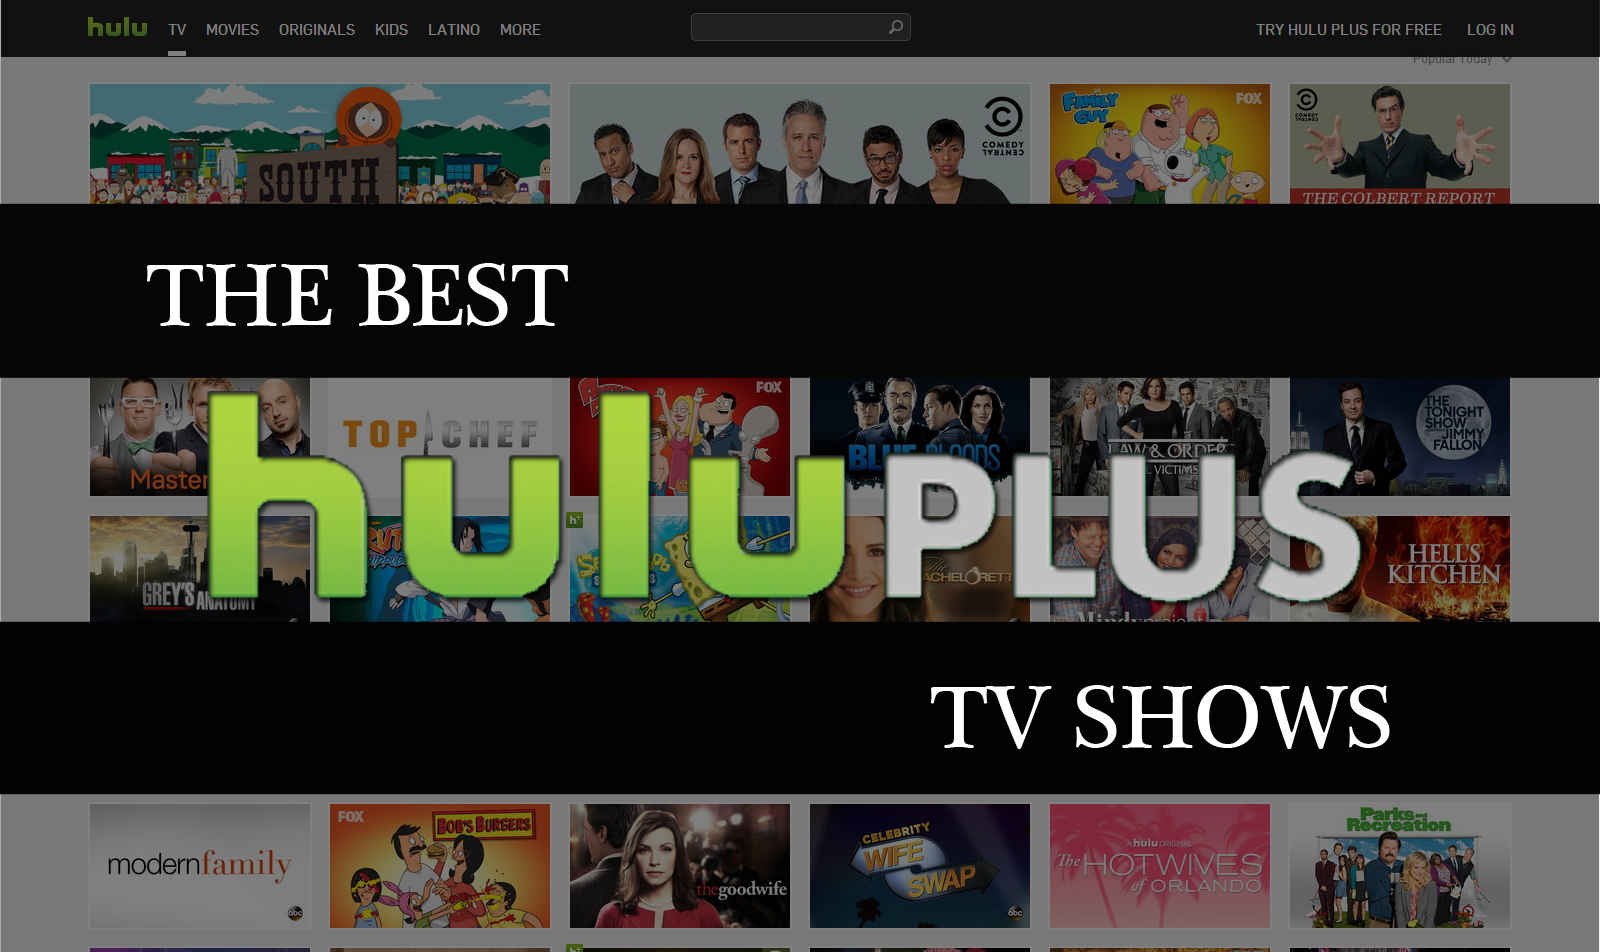 Can You Get Hallmark Channel On Hulu The Best Shows On Hulu Right Now Streaming Tv Shows Hulu Tv Shows Best Tv Shows